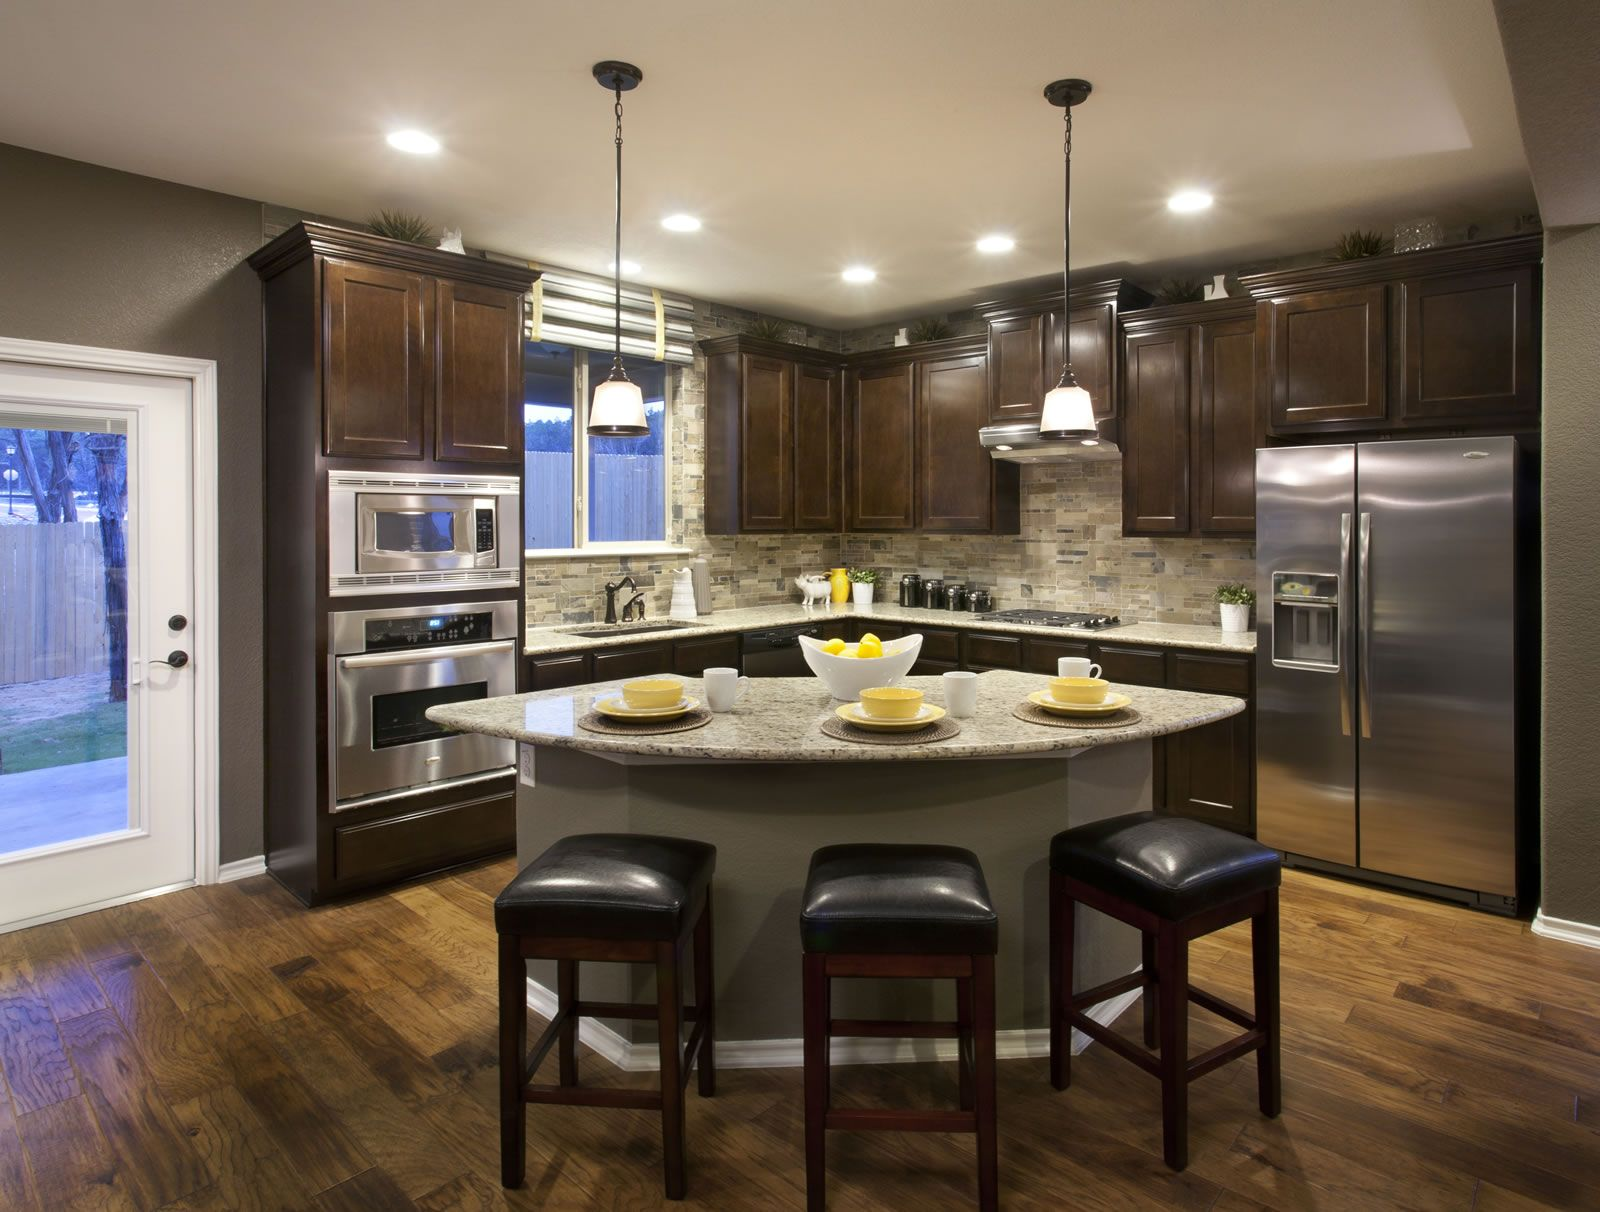 Kitchen (With images) | Home decor kitchen, Model home ... on Kitchen Model Ideas  id=99722